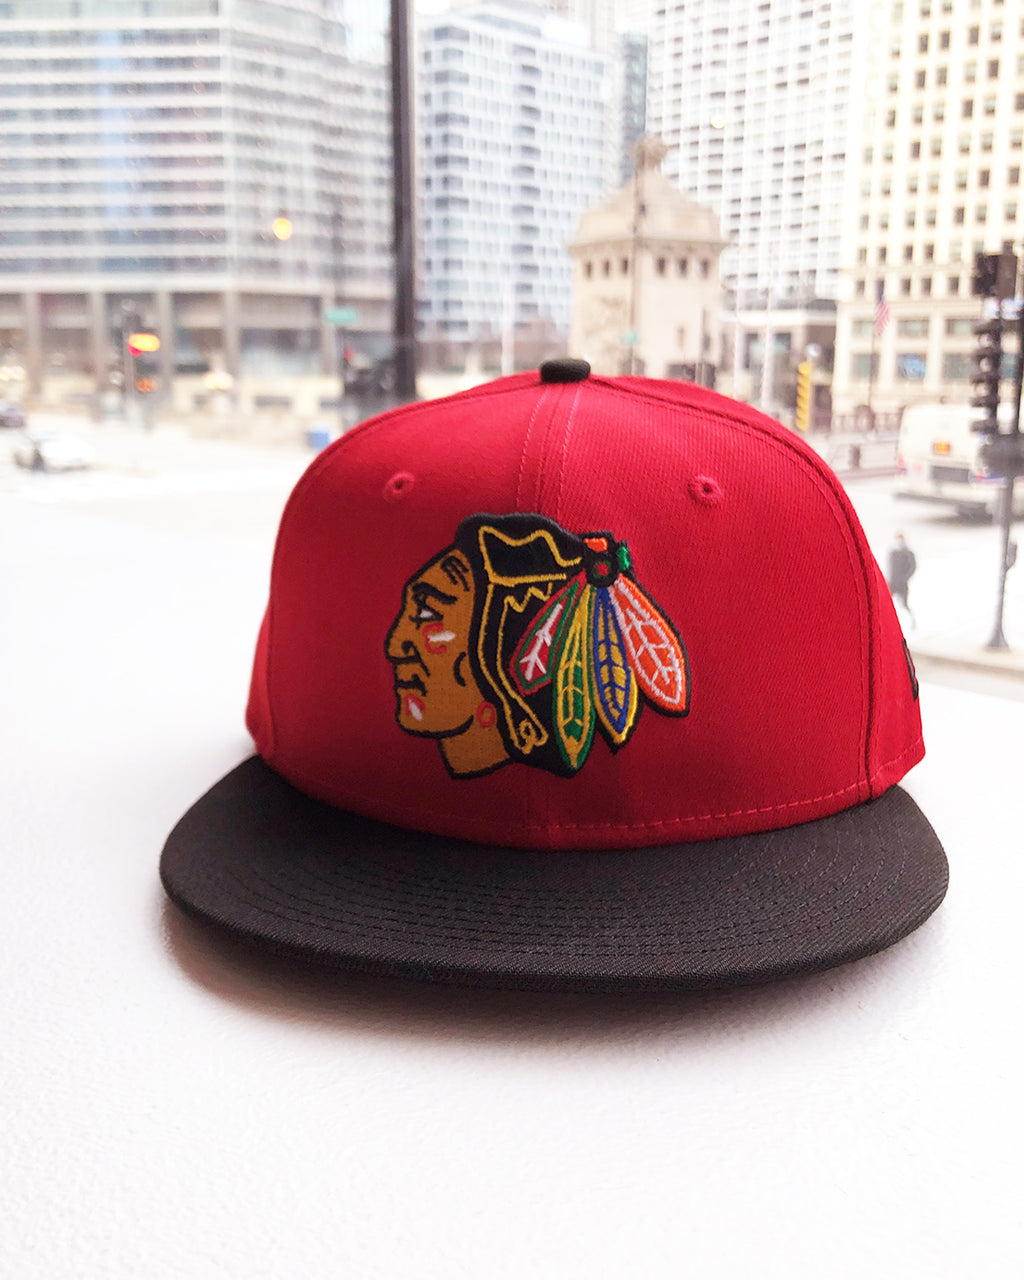 New Era Red & Black Fitted Cap